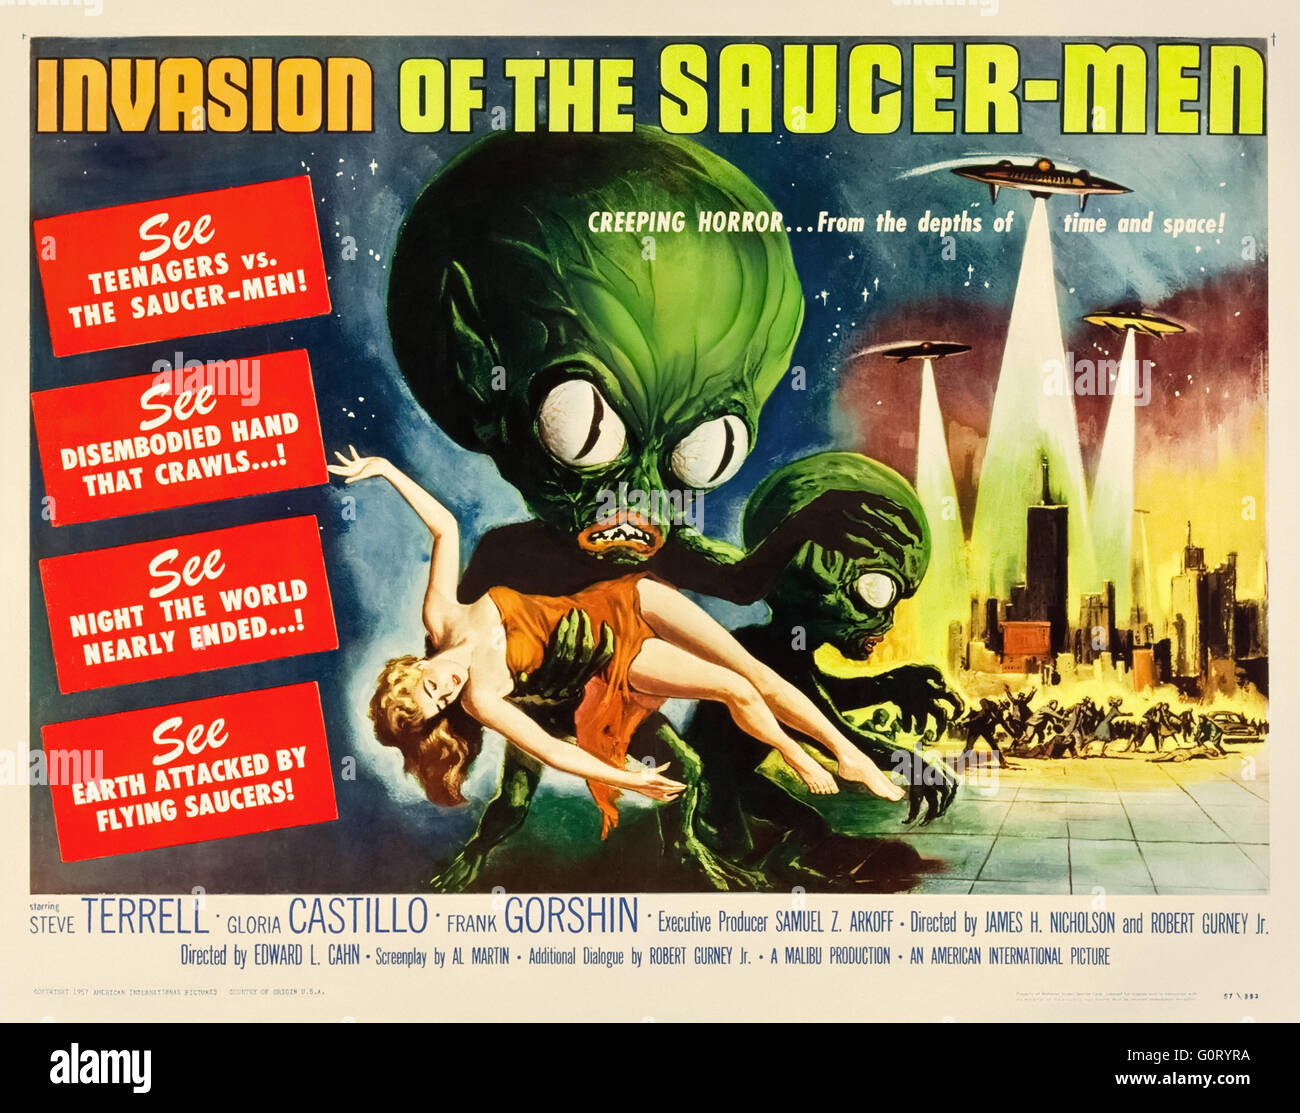 'Invasion of the Saucer-Men' (1957) directed by Edward L. Cahn and starring Steven Terrell, Gloria Castillo and Stock Photo